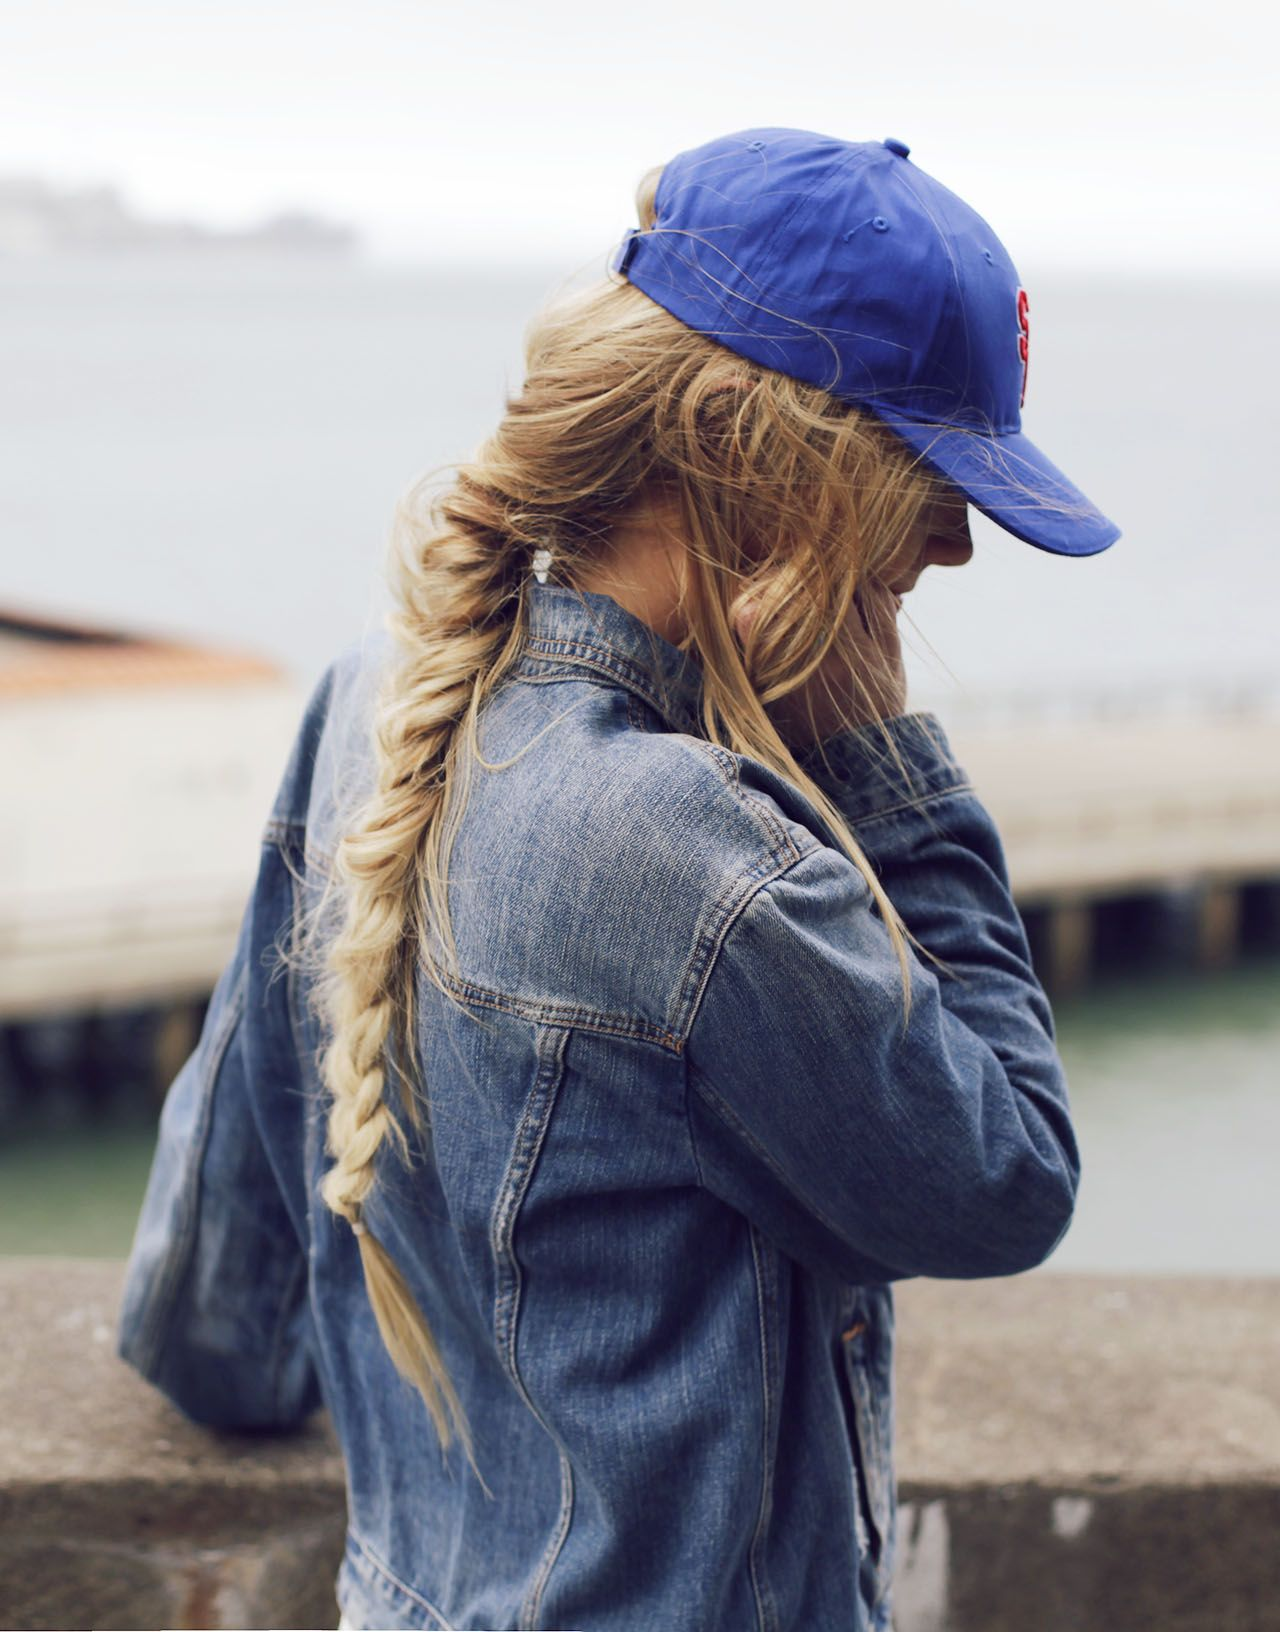 braid x baseball cap